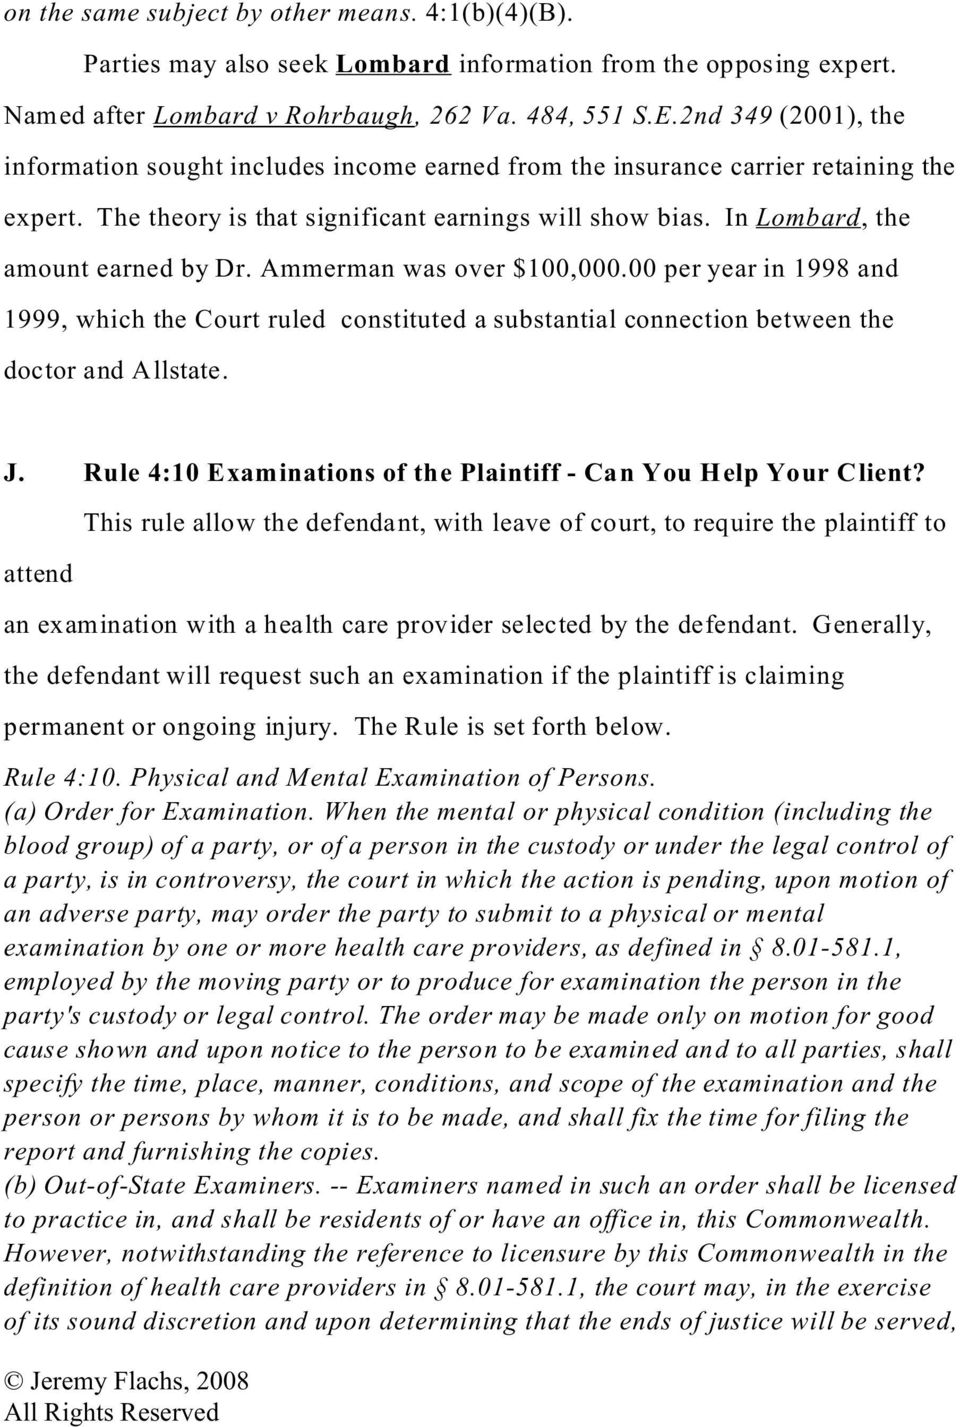 In Lombard, the amount earned by Dr. Ammerman was over $100,000.00 per year in 1998 and 1999, which the Court ruled constituted a substantial connection between the doctor and Allstate. J.